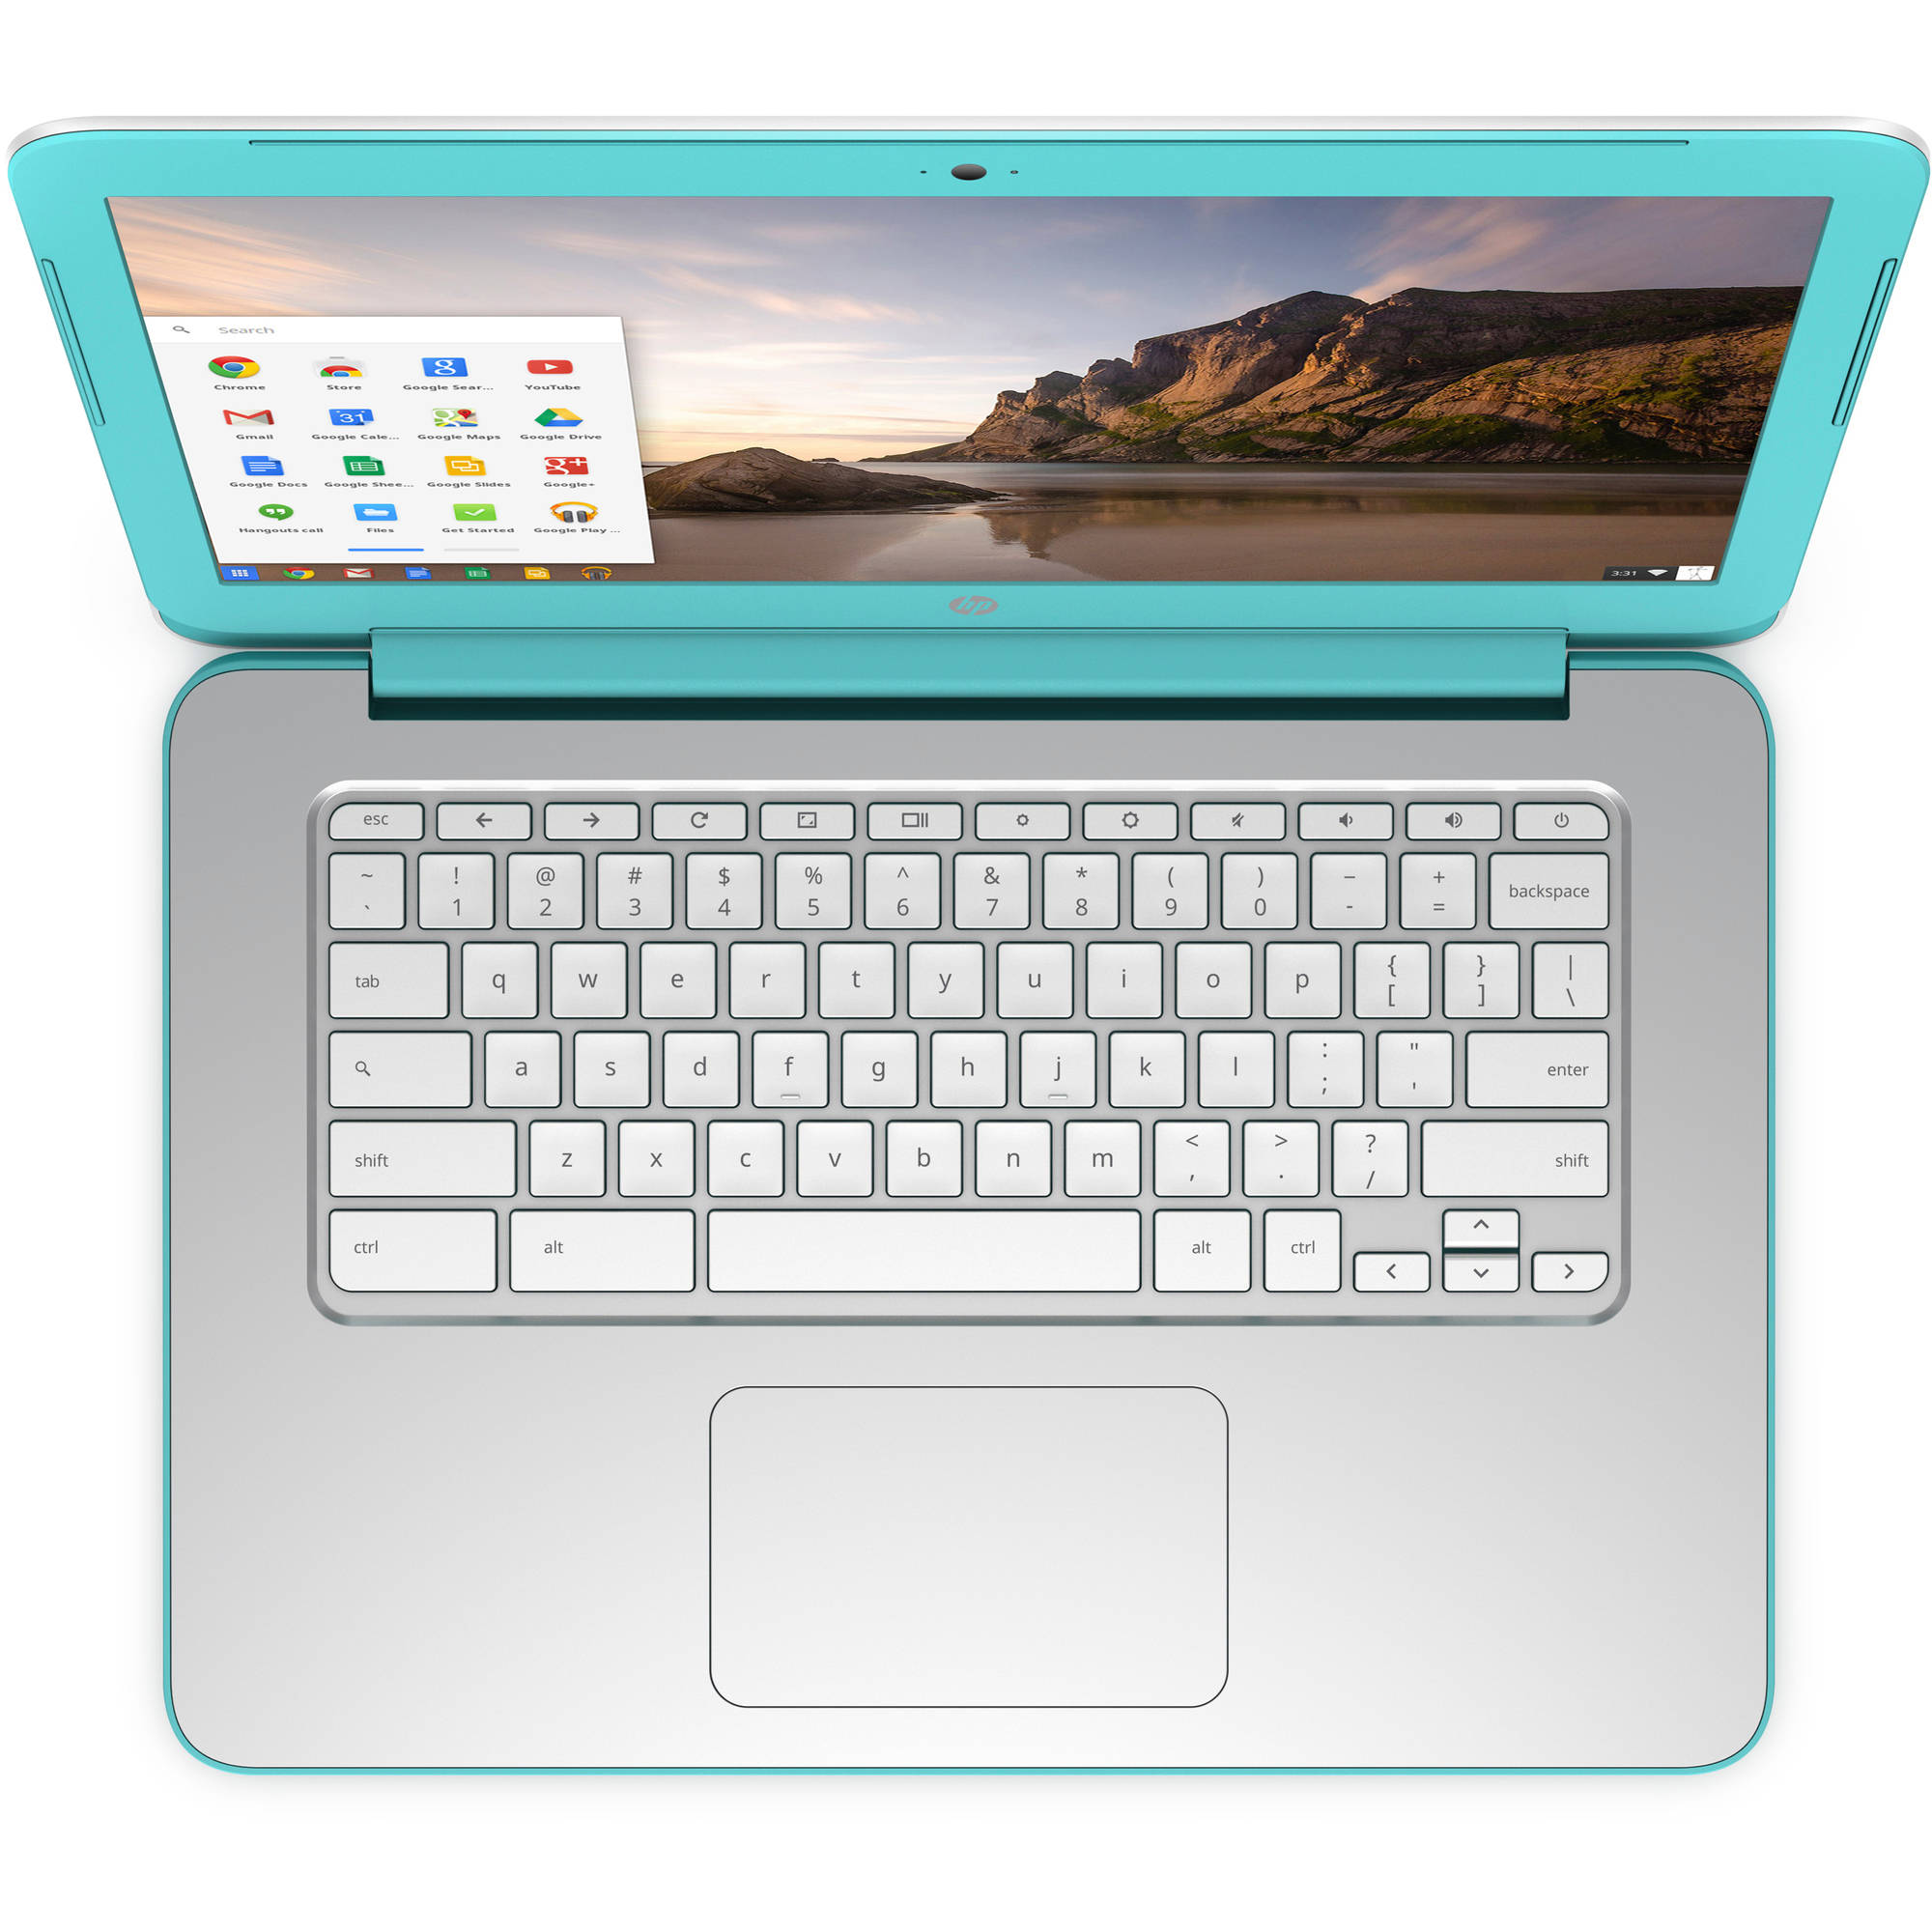 "Refurbished HP White/Turquoise 14"" 14-x010wm Chromebook PC with NVIDIA Tegra K1 Mobile Processor, 2GB Memory, 16GB eMMC and Chrome OS"